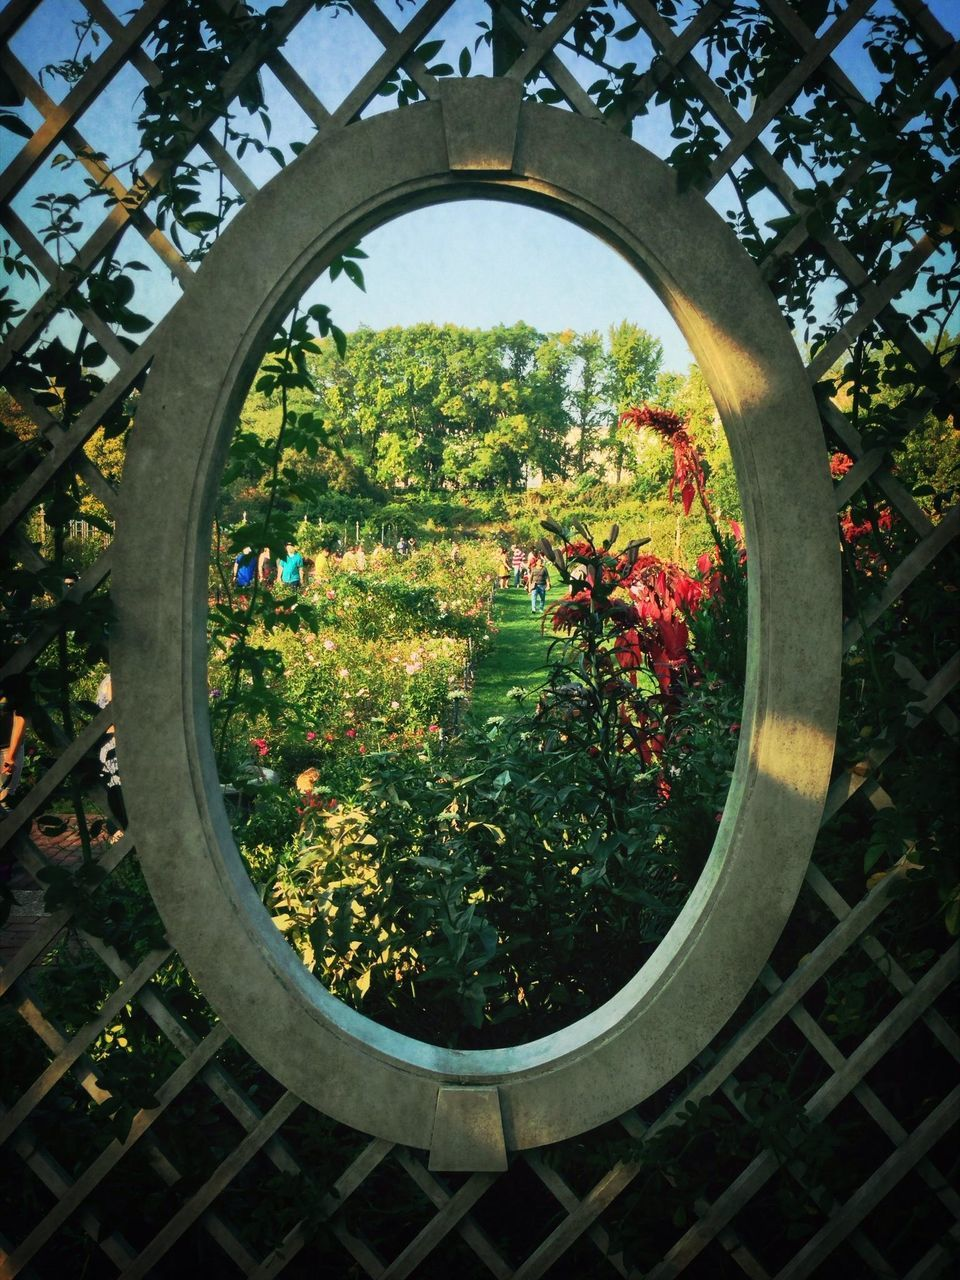 View of people in park through oval window